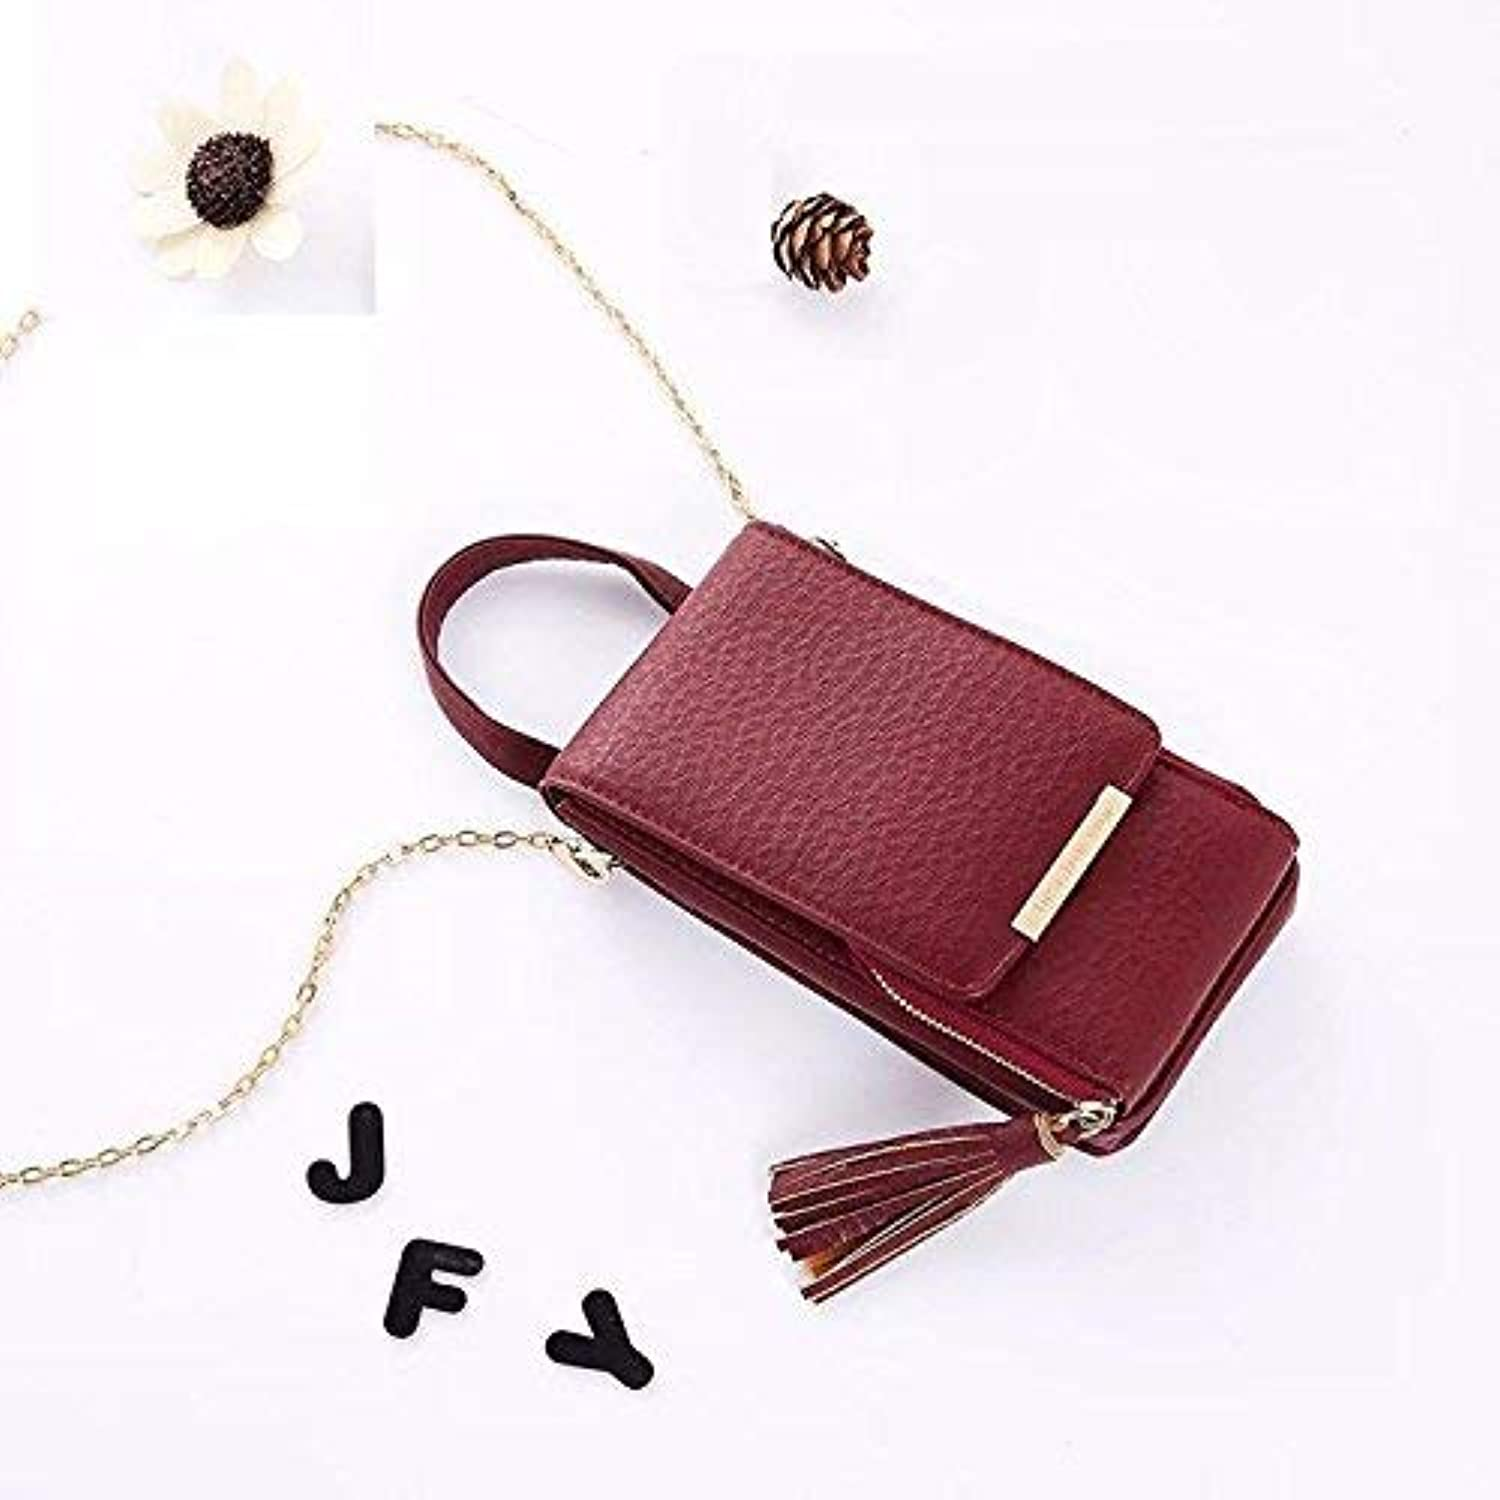 Girls Purse Small Bag Lady Satchel Chain Bag Lady Fashion, Fringed Mobile Phone Wallet (color   Bordeaux)